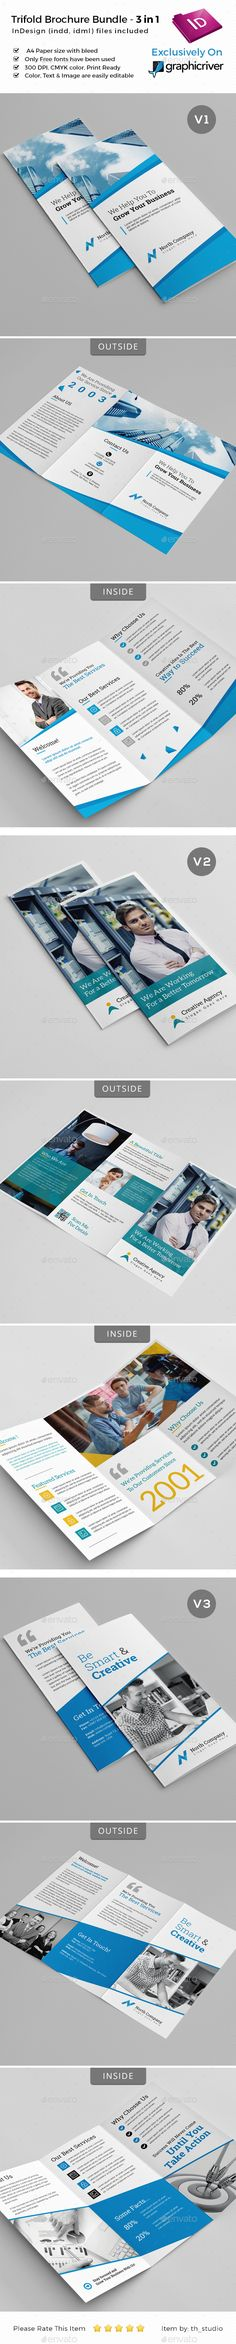 Trifold Brochure Template INDD Bundle - 3 in 1